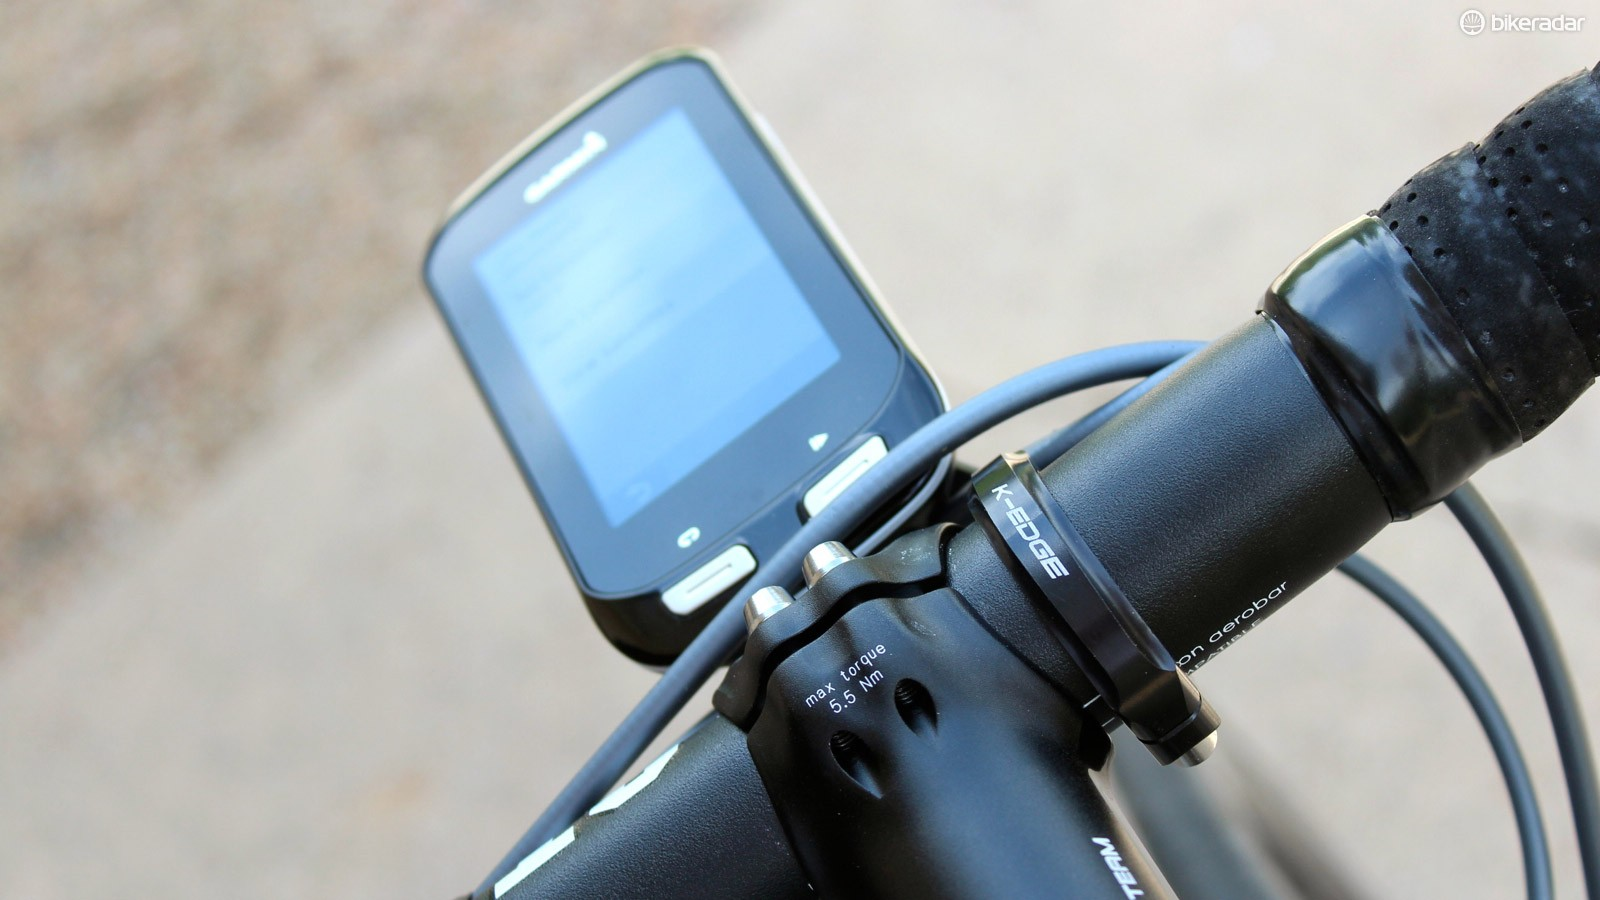 While its works with any Garmin computer, the K-Edge Garmin Pro Handlebar Mount XL was designed specifically for the Garmin Edge 1000